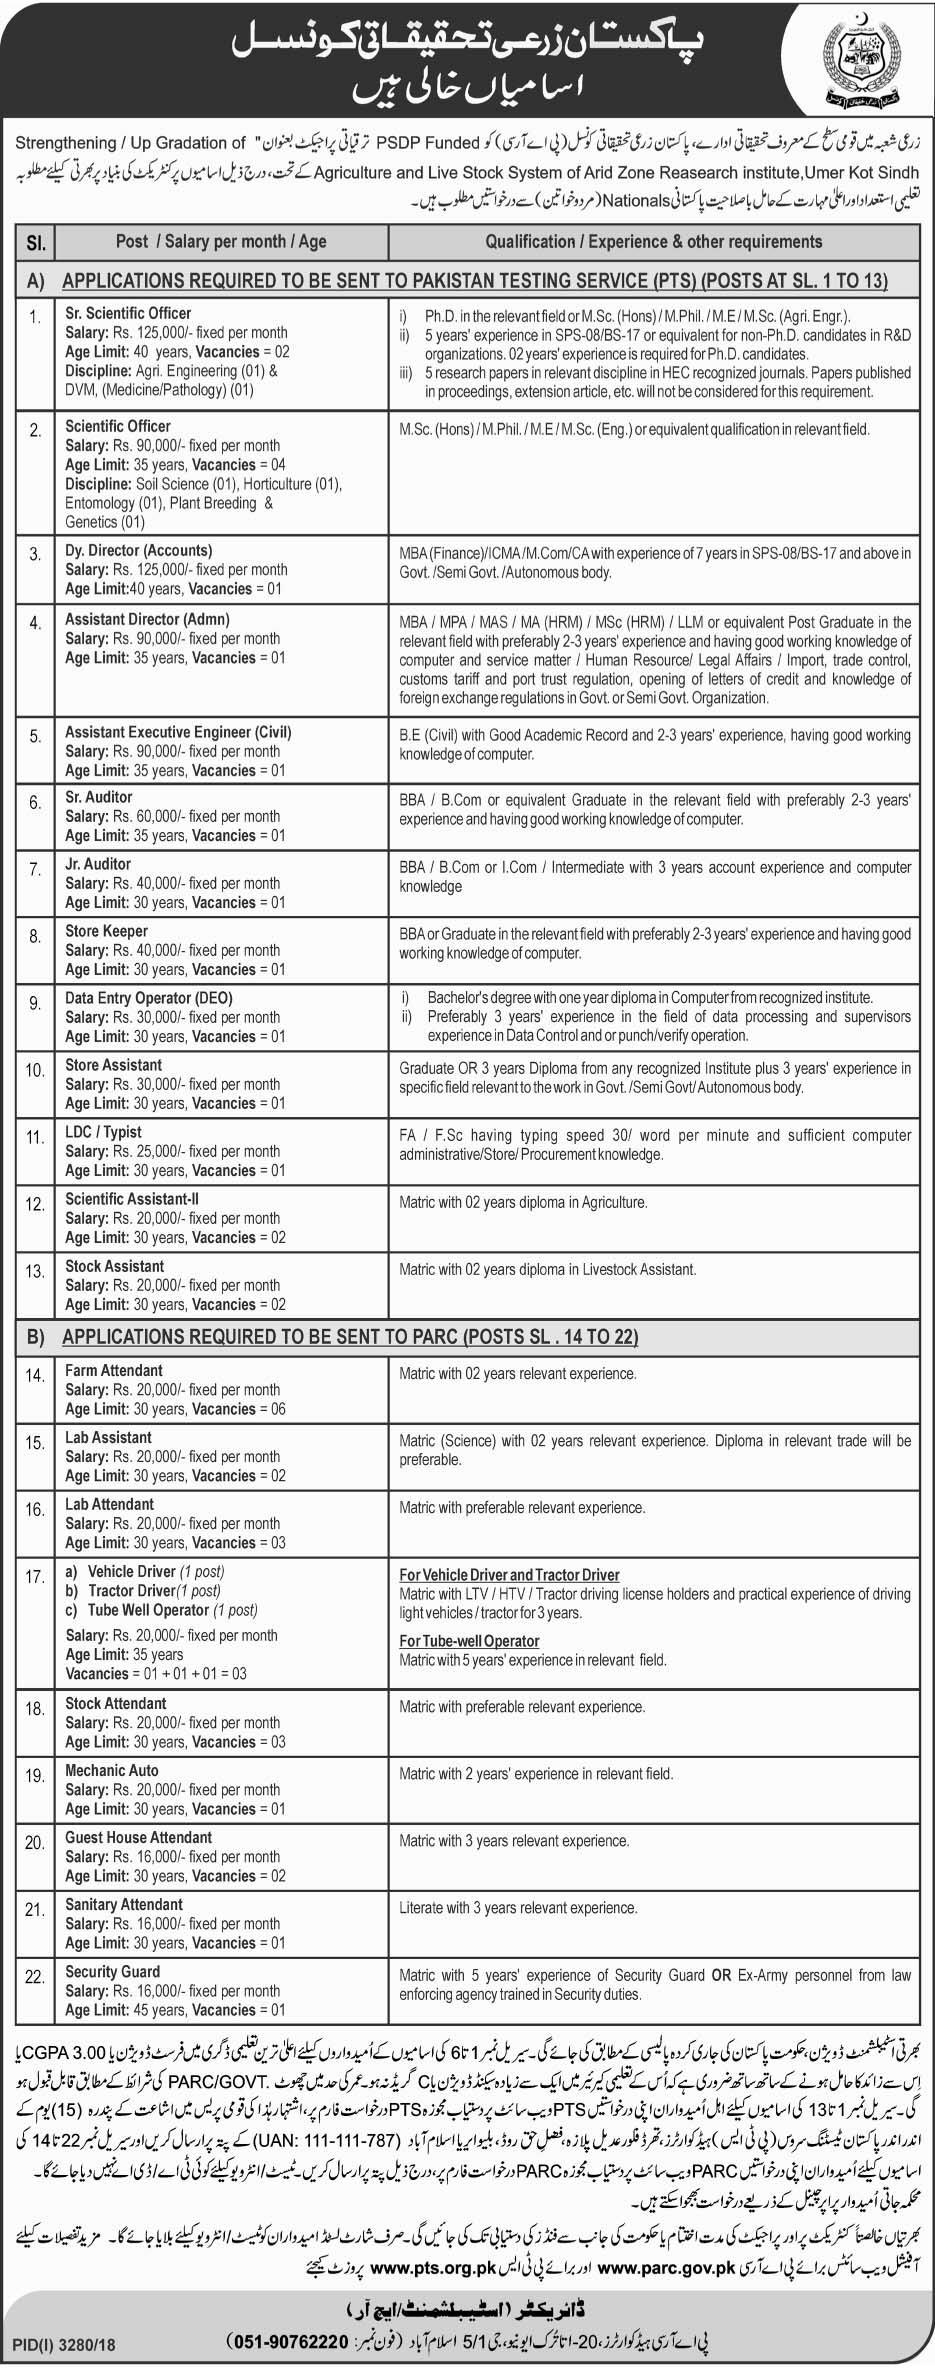 PARC Jobs 2019 PTS Application Form Download | www.parc.com.pk